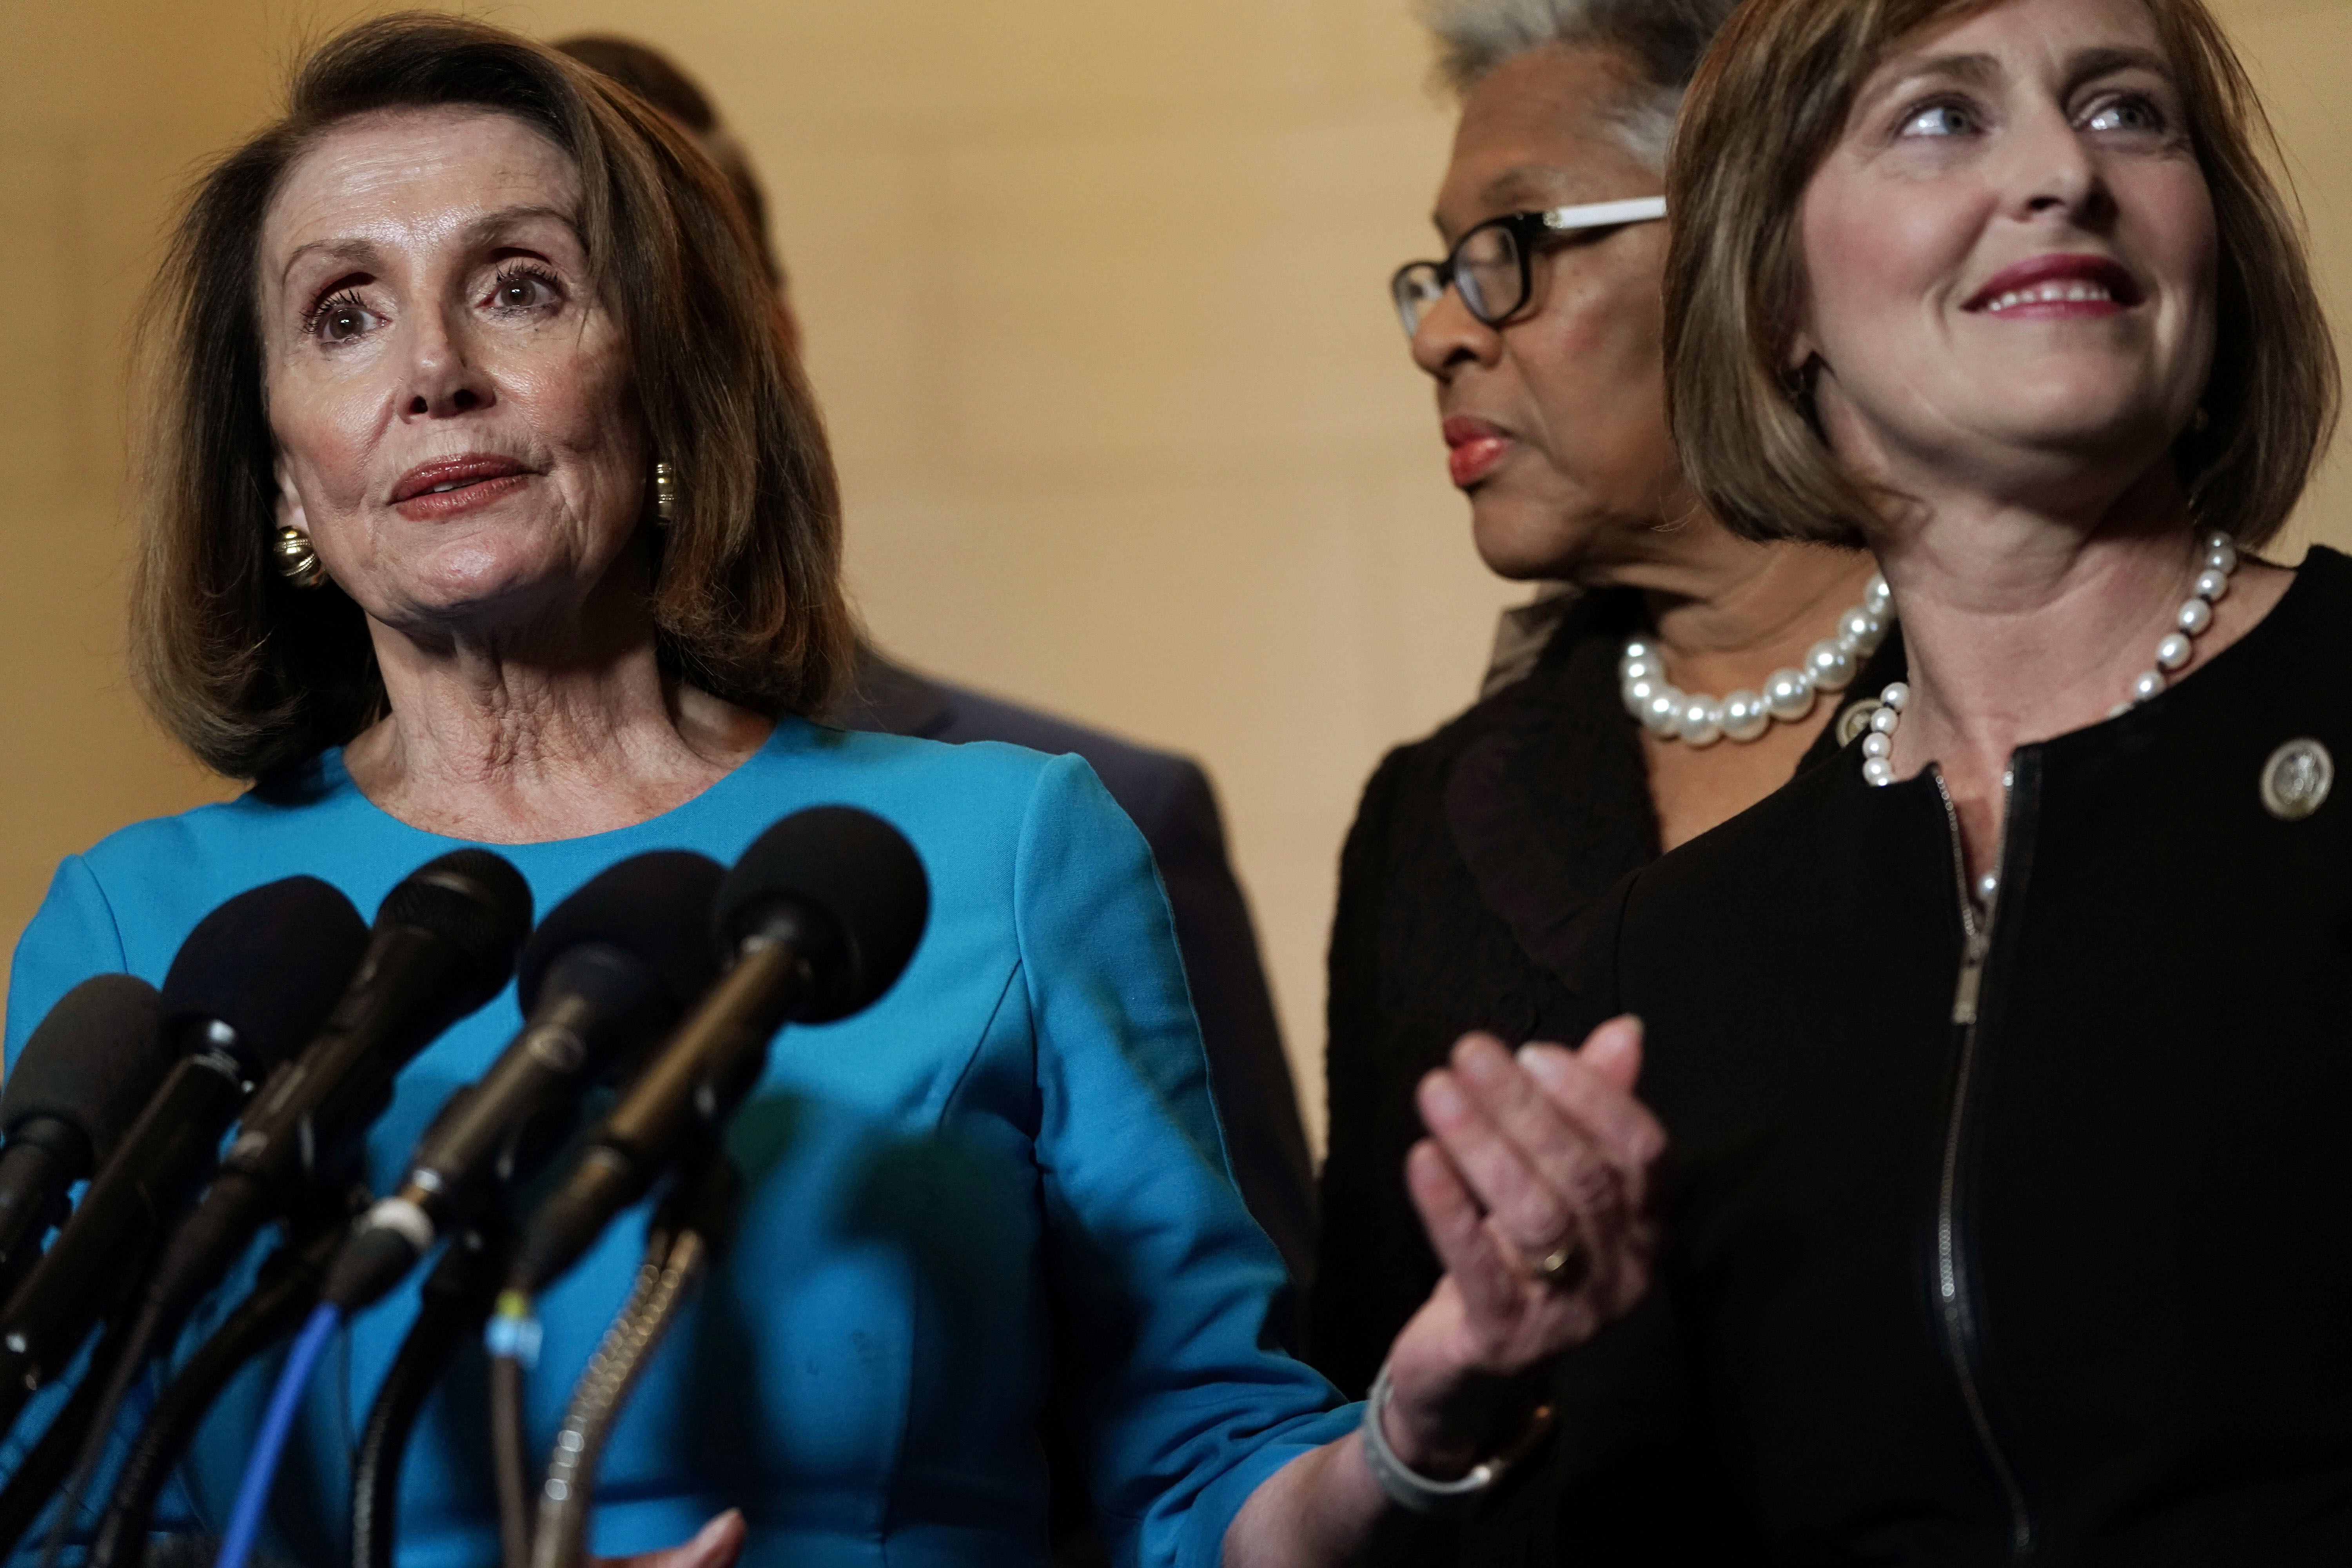 WASHINGTON, DC - NOVEMBER 28: U.S. House Minority Leader Rep. Nancy Pelosi (D-CA) (L) speaks to members of the media as Rep. Joyce Beatty (D-OH) (2nd L), and Rep. Kathy Castor (D-FL) (R) listen at the lobby of Longworth House Office Building November 28, 2018 in Washington, DC. House Democrats have nominated Rep. Nancy Pelosi to run for Speaker of the House for the 116th Congress. (Photo by Alex Wong/Getty Images)